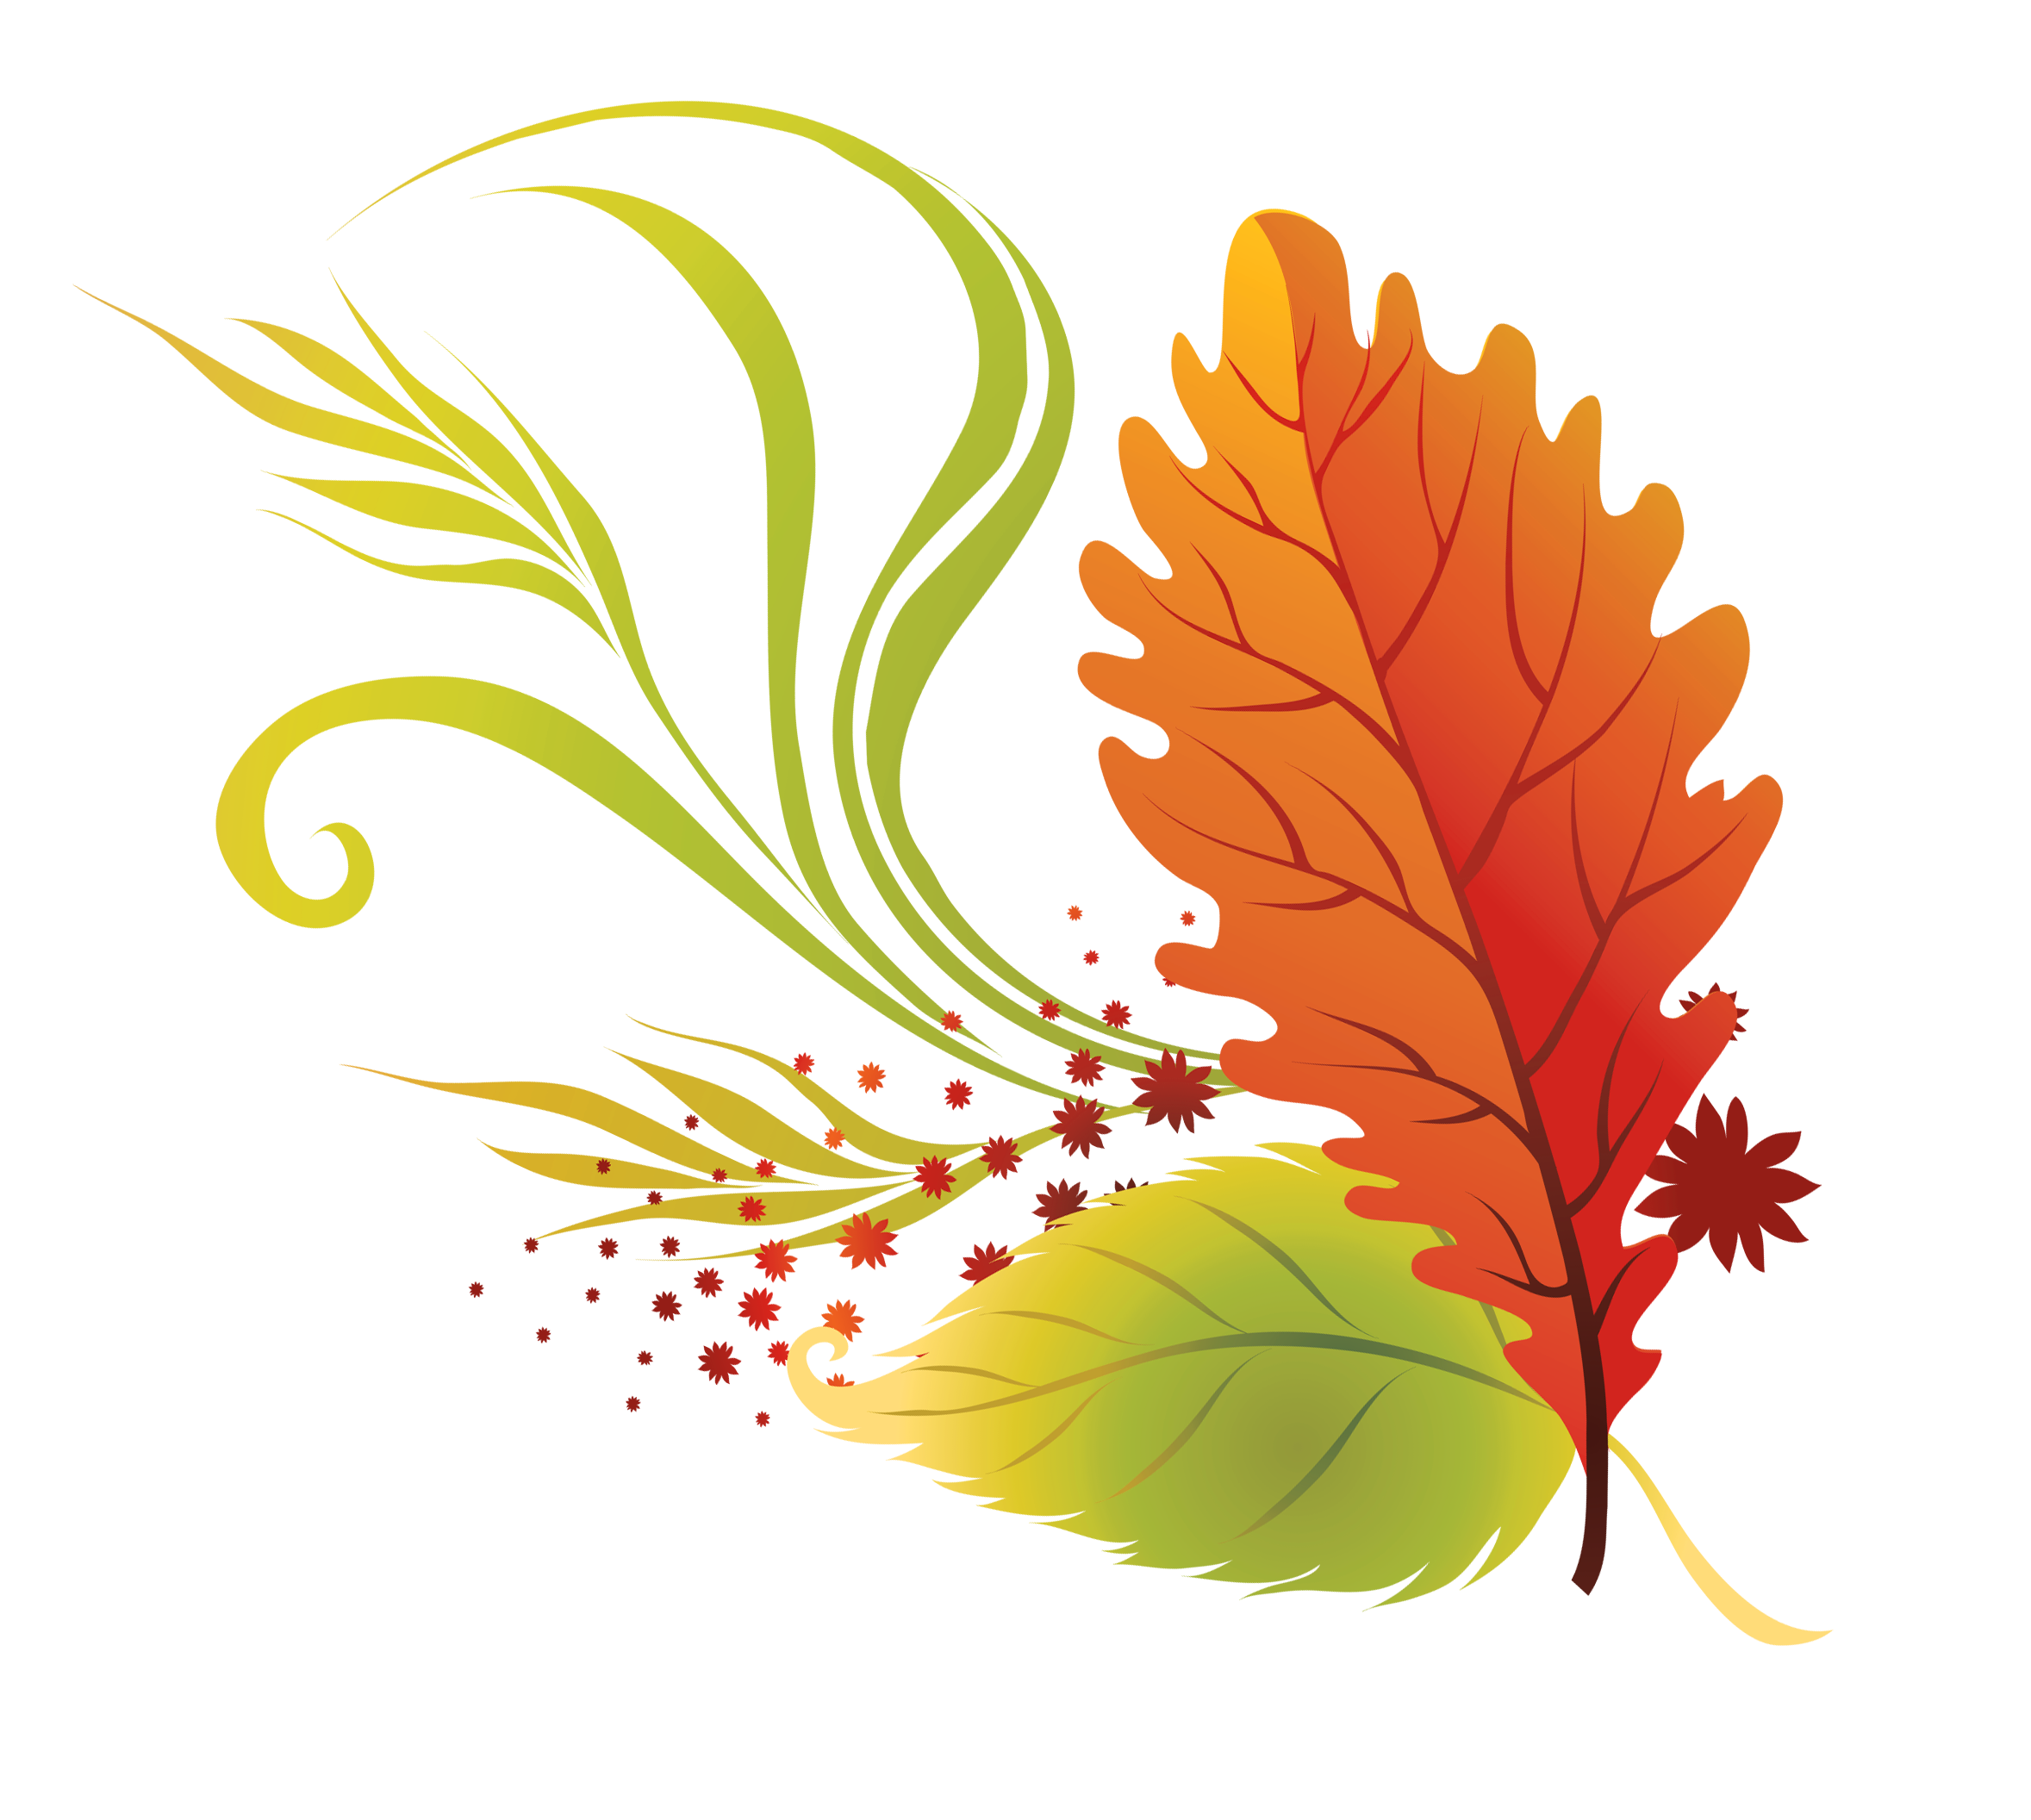 Fall leaves png picture. Autumn clipart transparent background